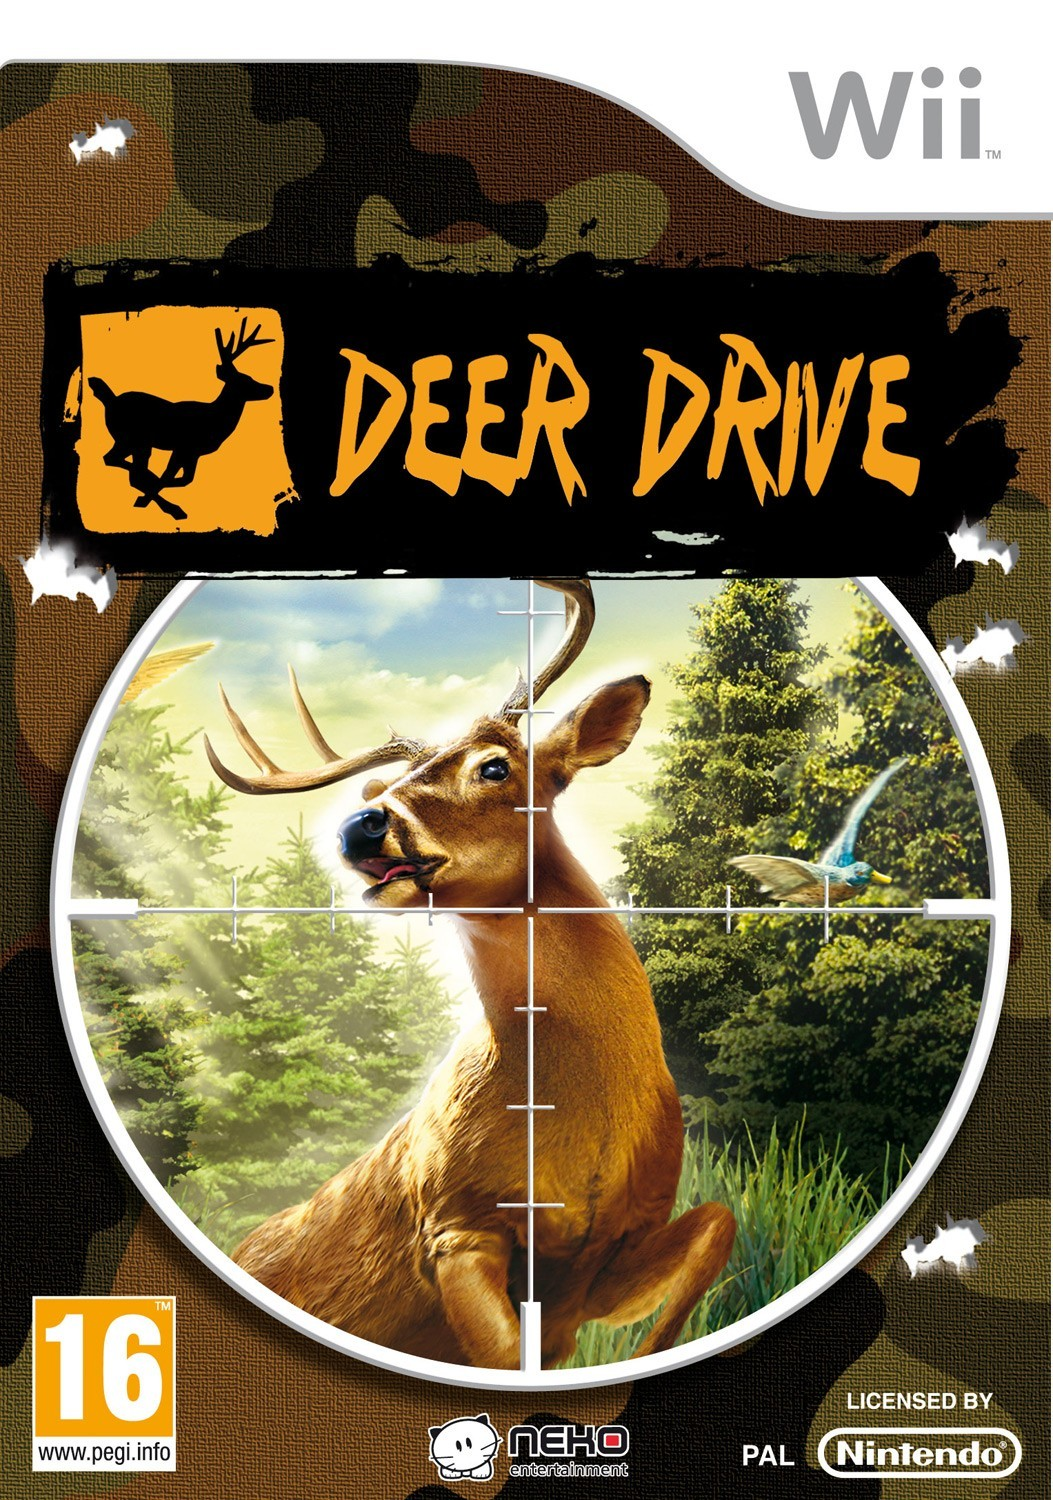 deer drive fusil collector wii jeux de chasse made in chasse. Black Bedroom Furniture Sets. Home Design Ideas